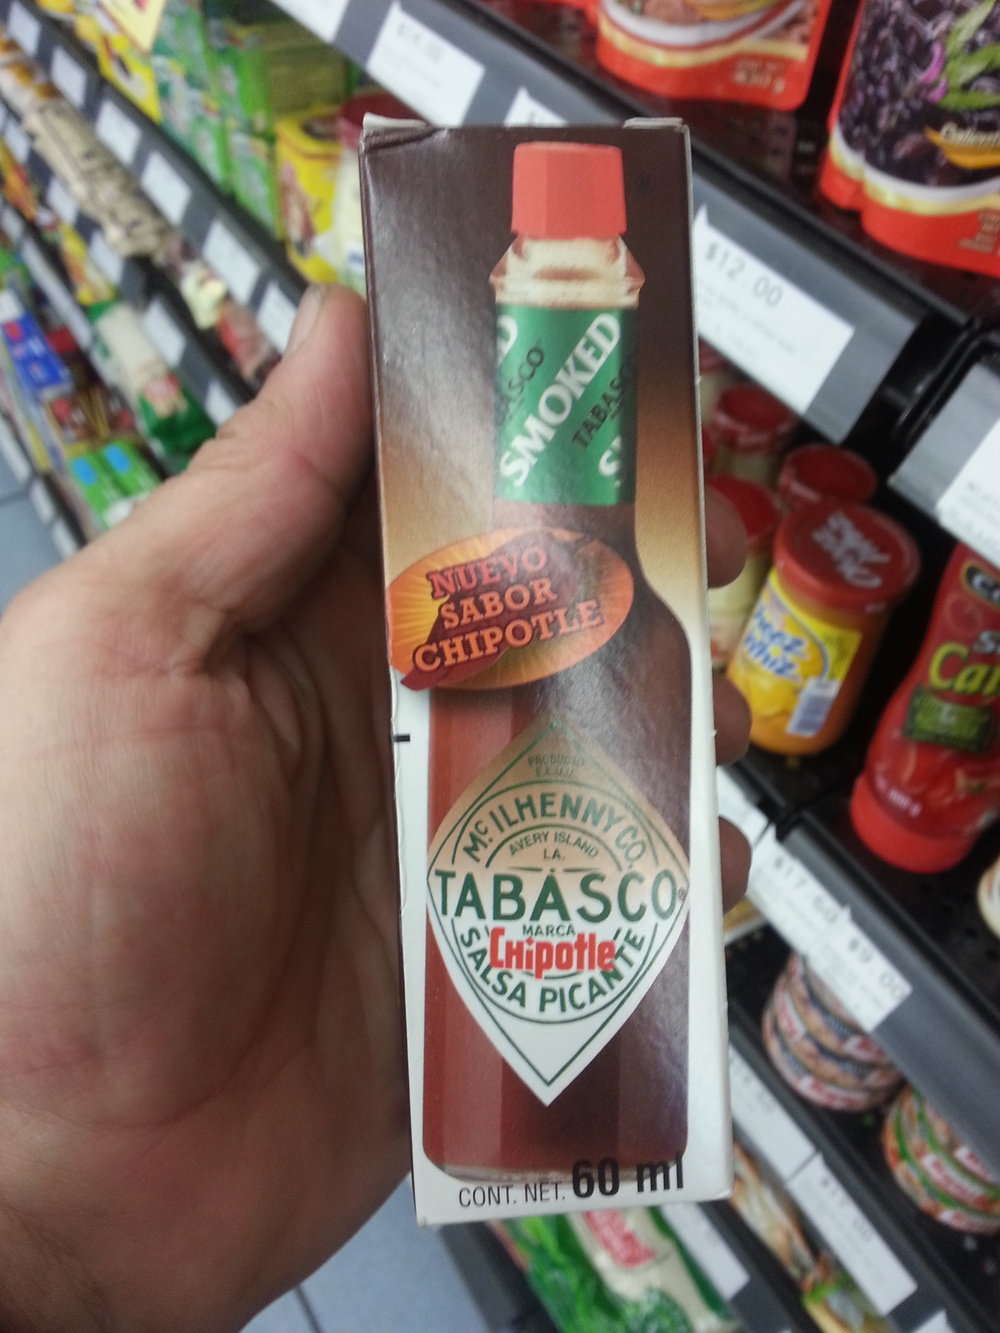 Does this Tabasco really come from the Tabasco region? Not sure...